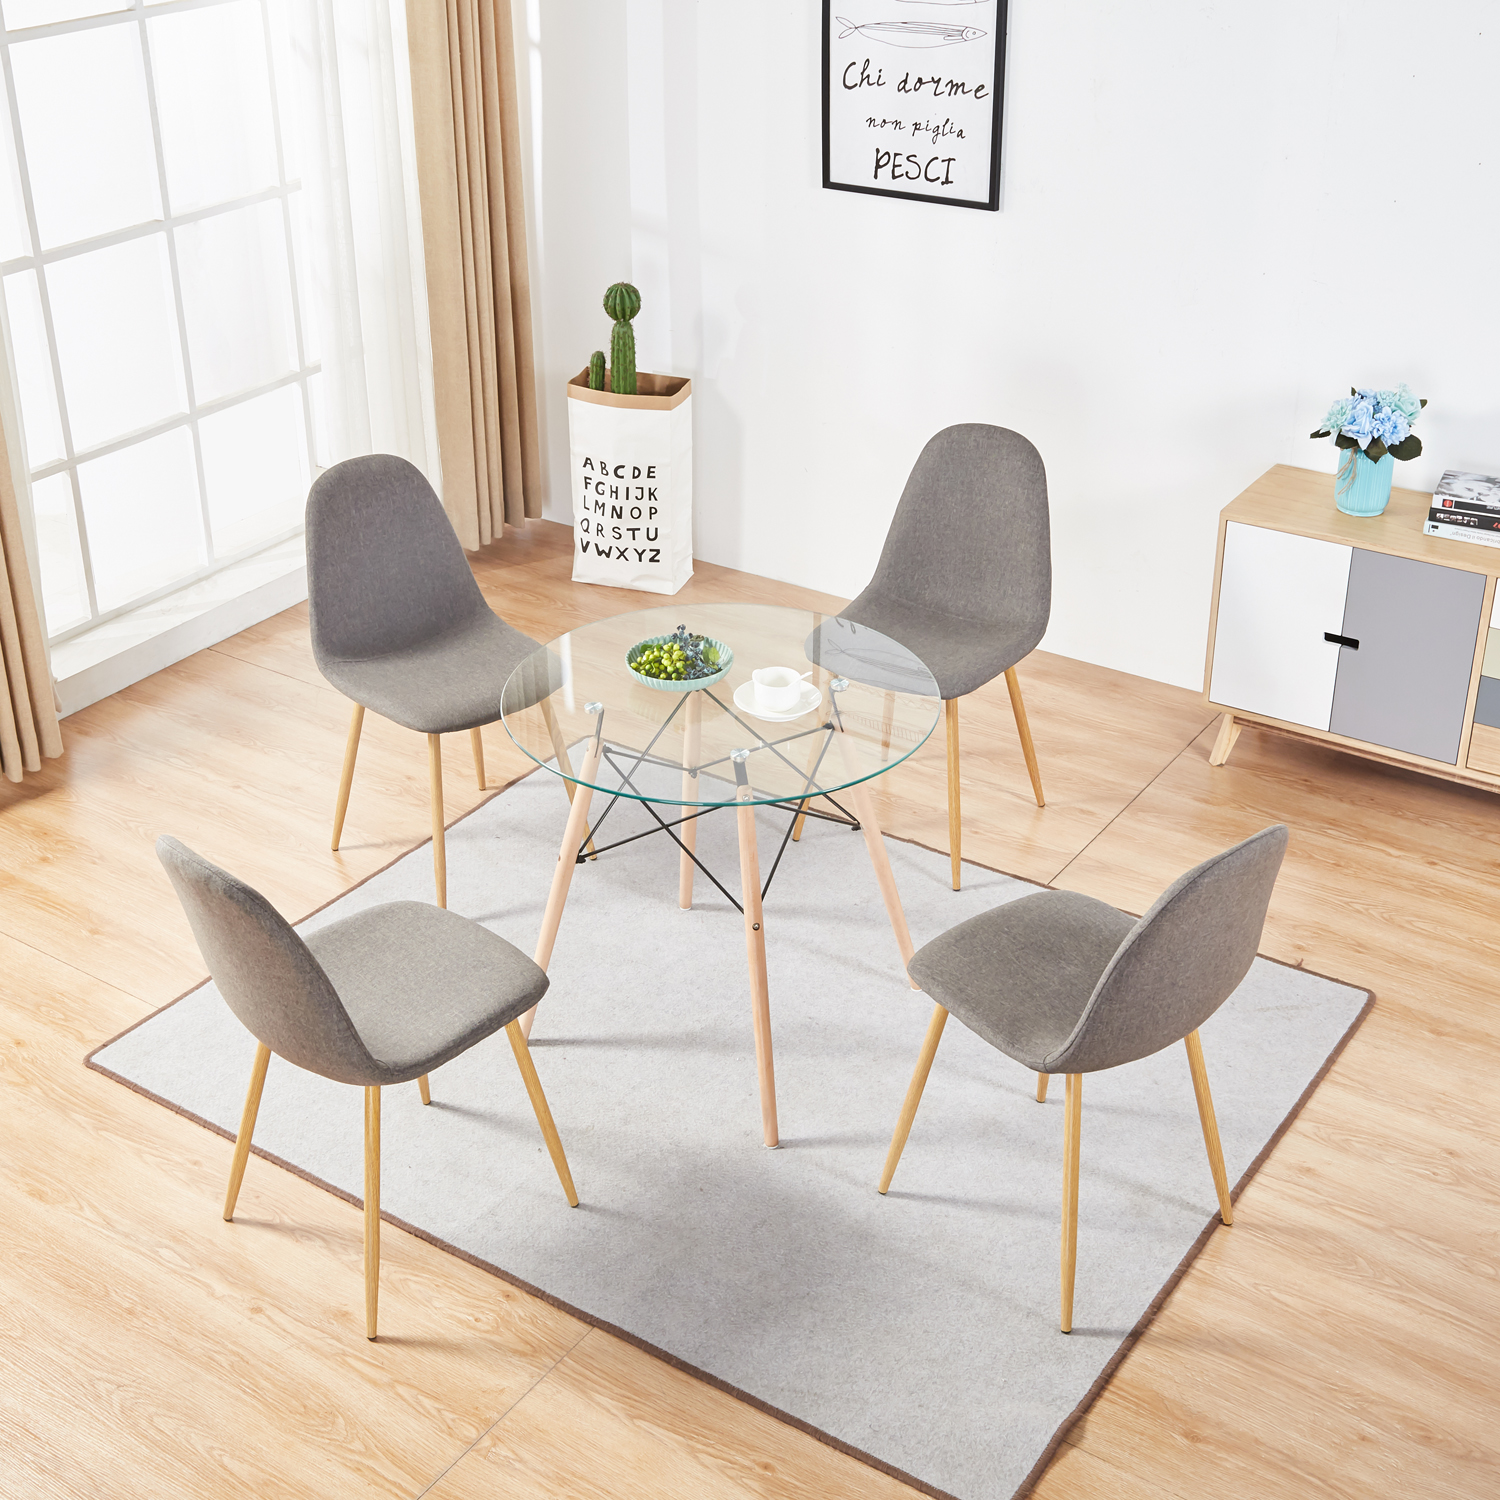 Table With Chairs Mcombo Dining Side Chairs Set Of 4 Dining Table Round Clear Glass Table For Kitchen Dining Room